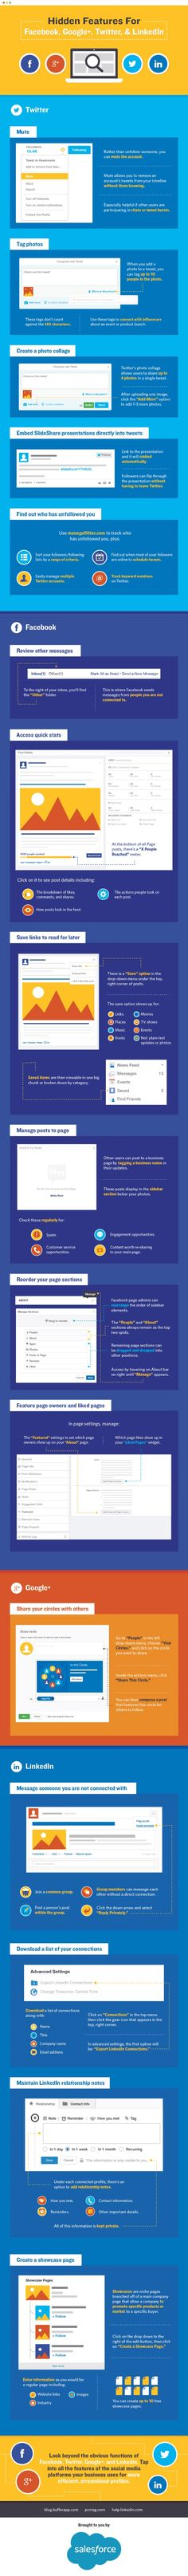 Facebook, Google+, Twitter, LinkedIn Hidden Features (Infographic)